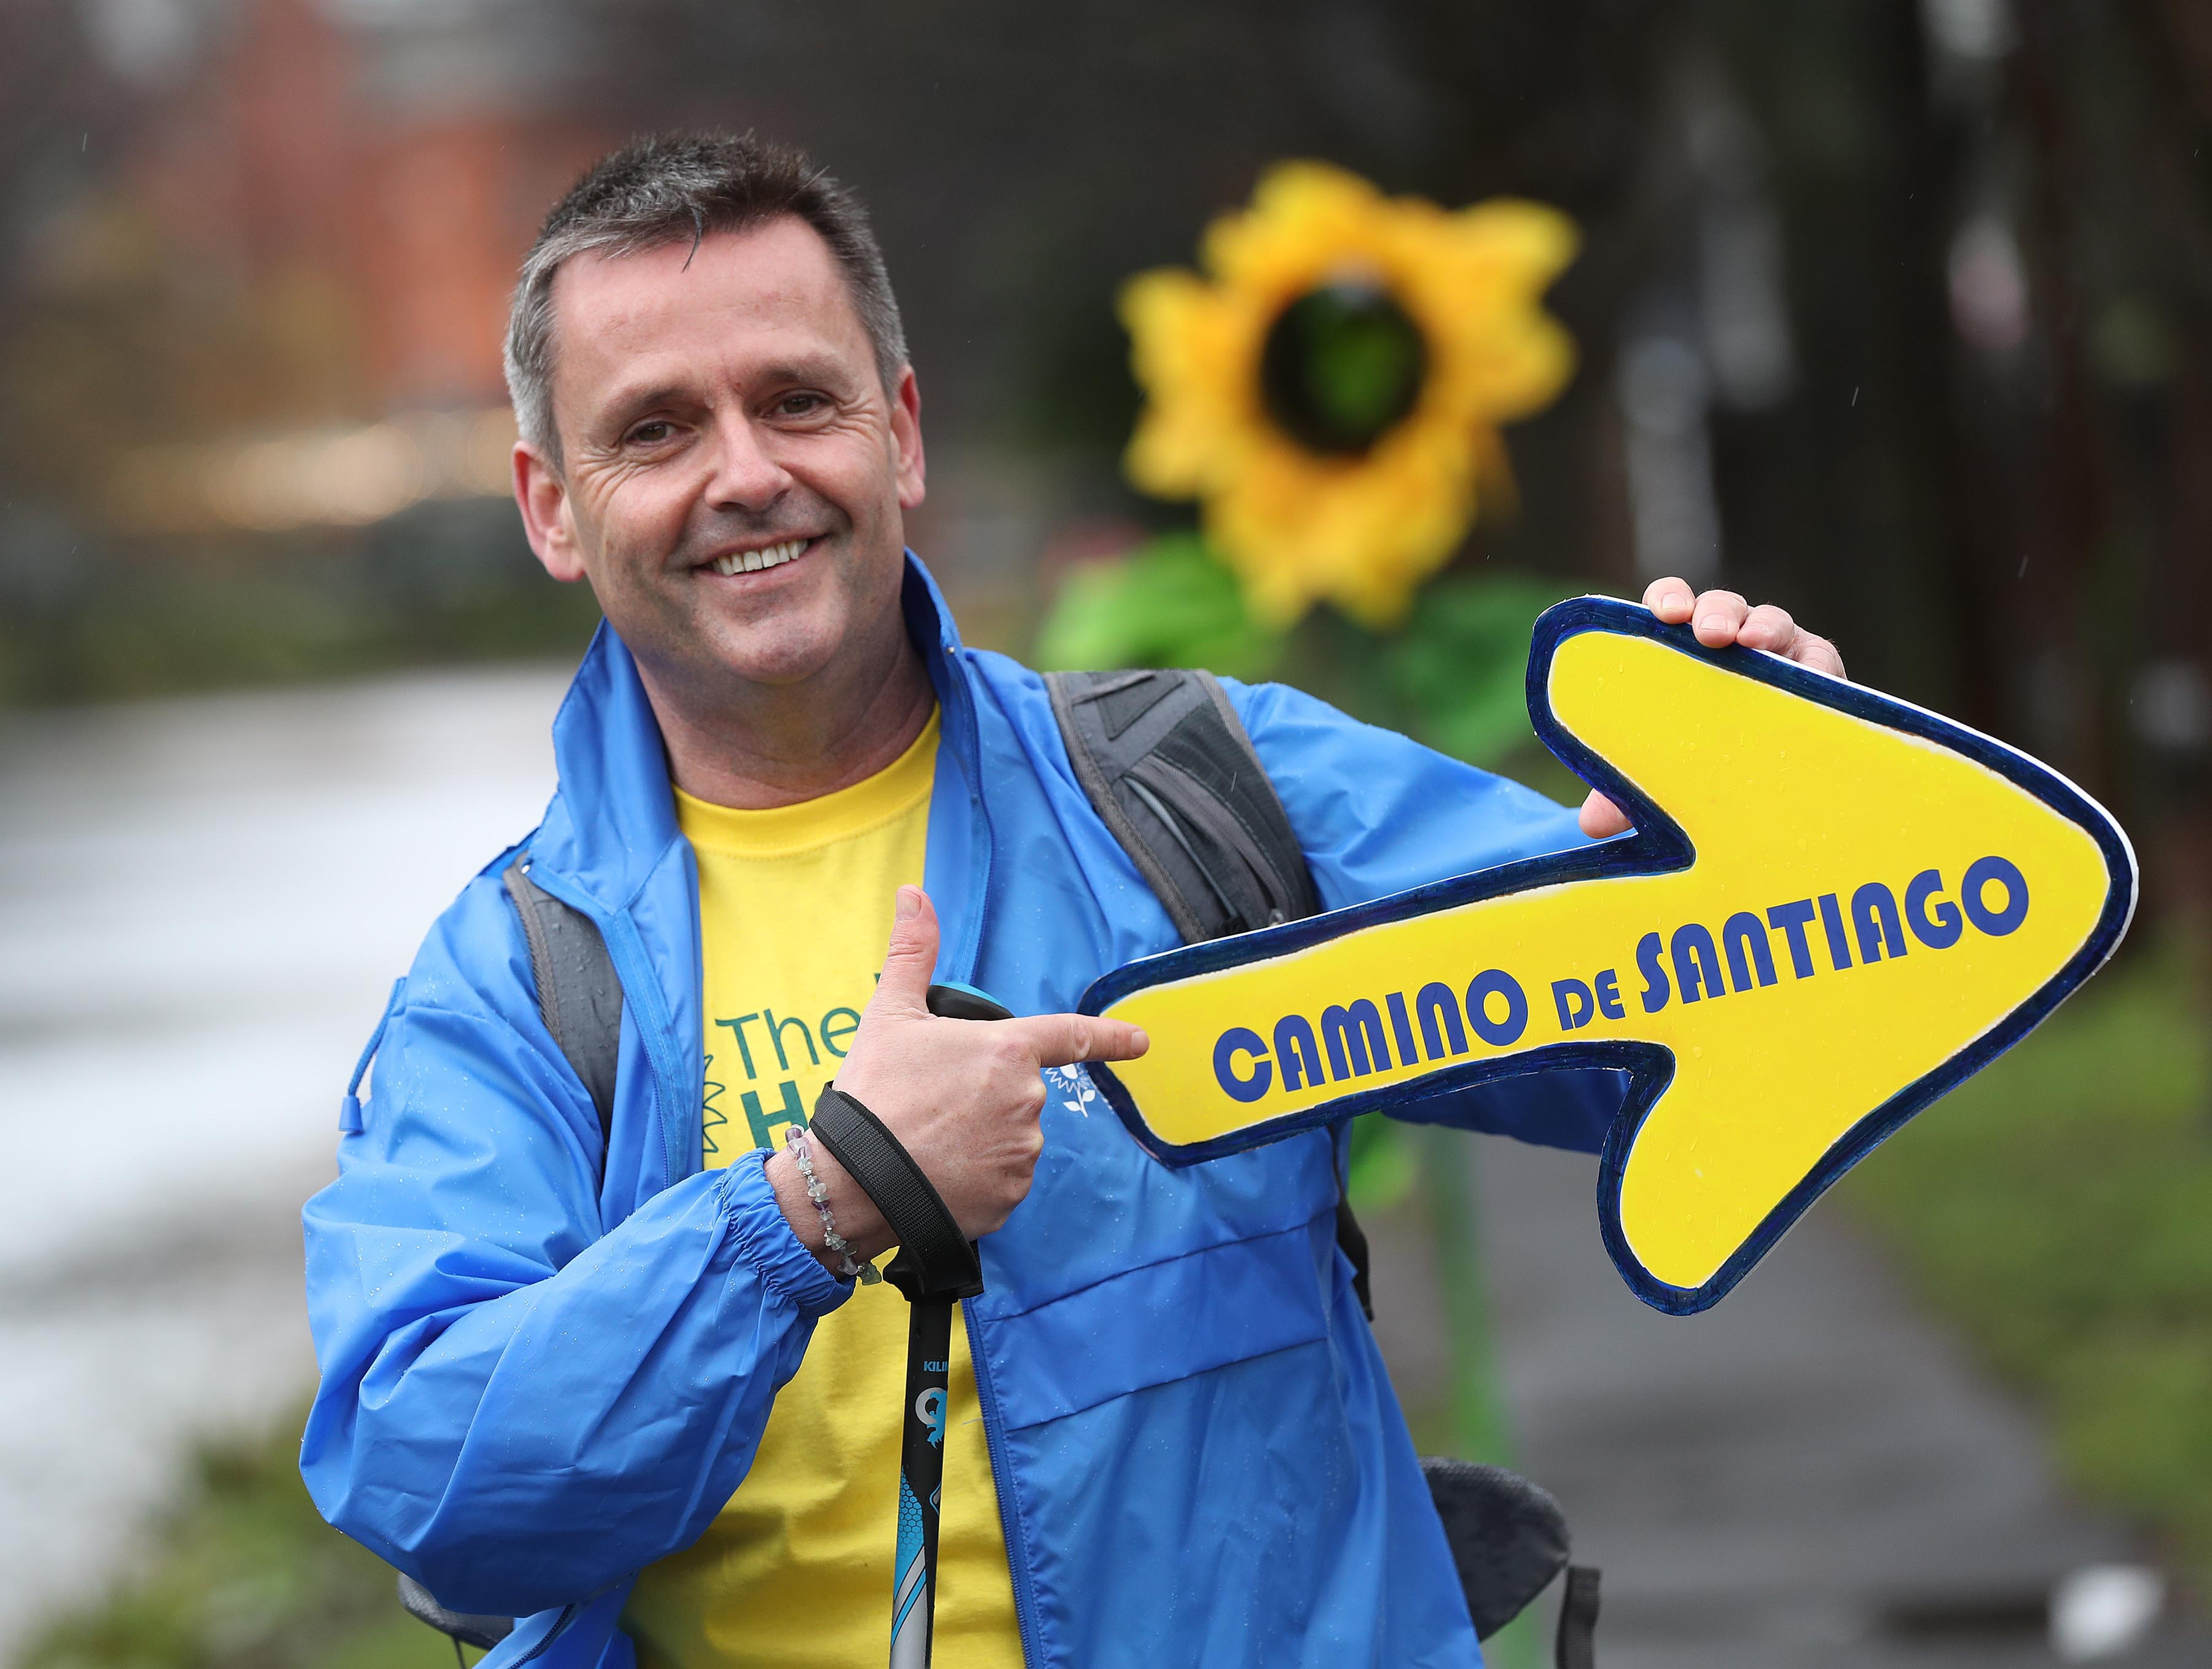 Camino Santiago News Former Rte News Broadcaster Wants Laois People To Join Him On The